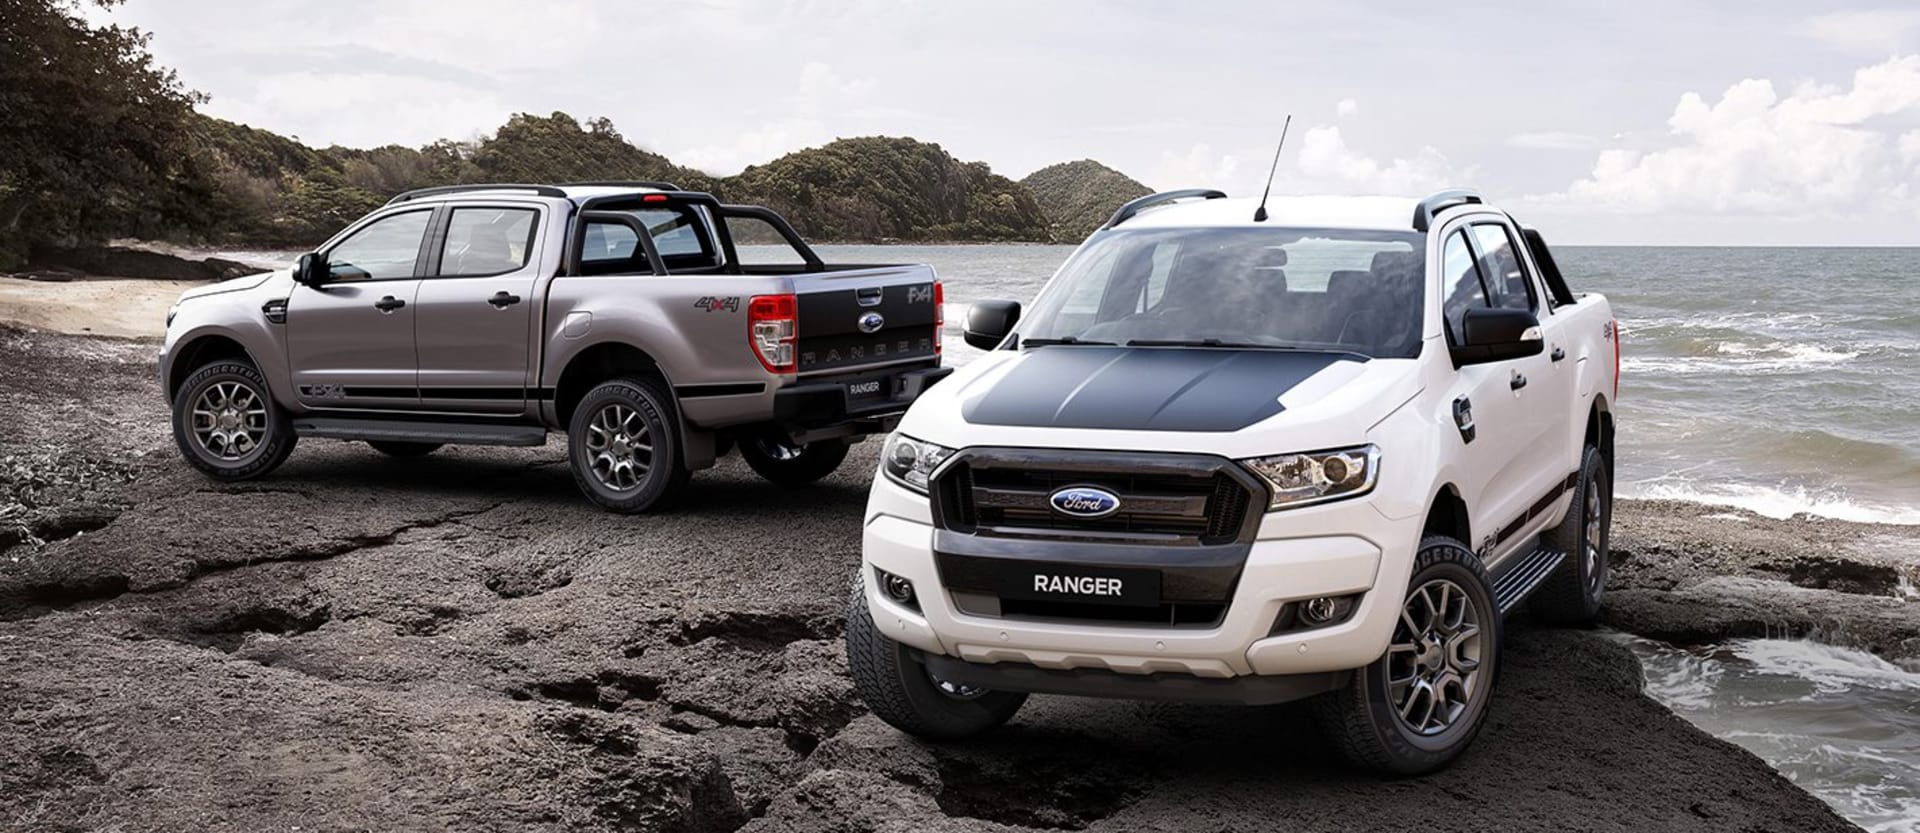 Should I buy a ute or a van for my business?